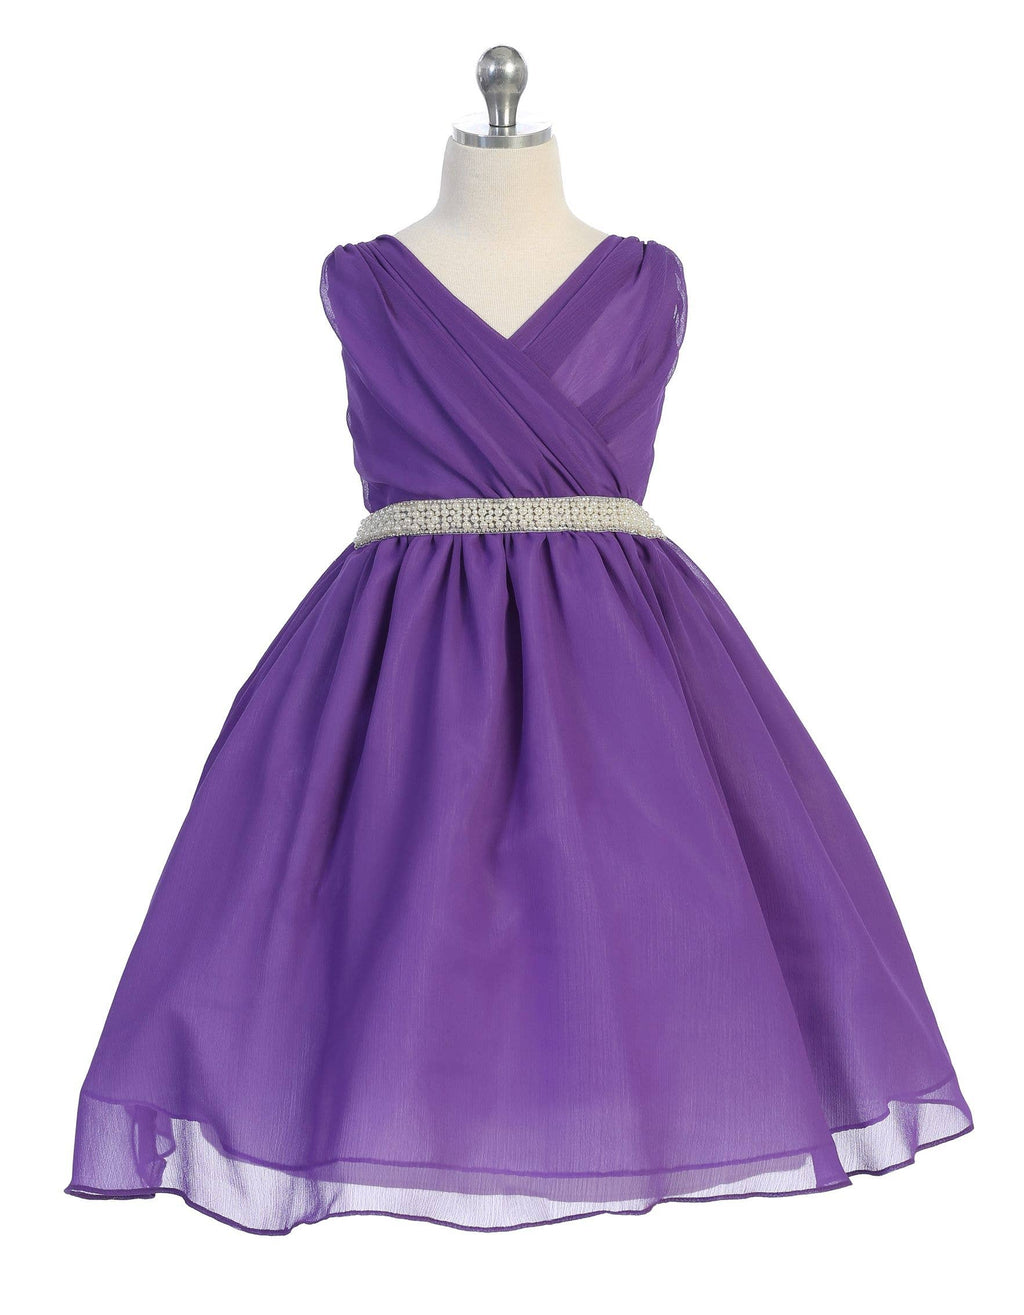 Purple Cross Body Chiffon Dress